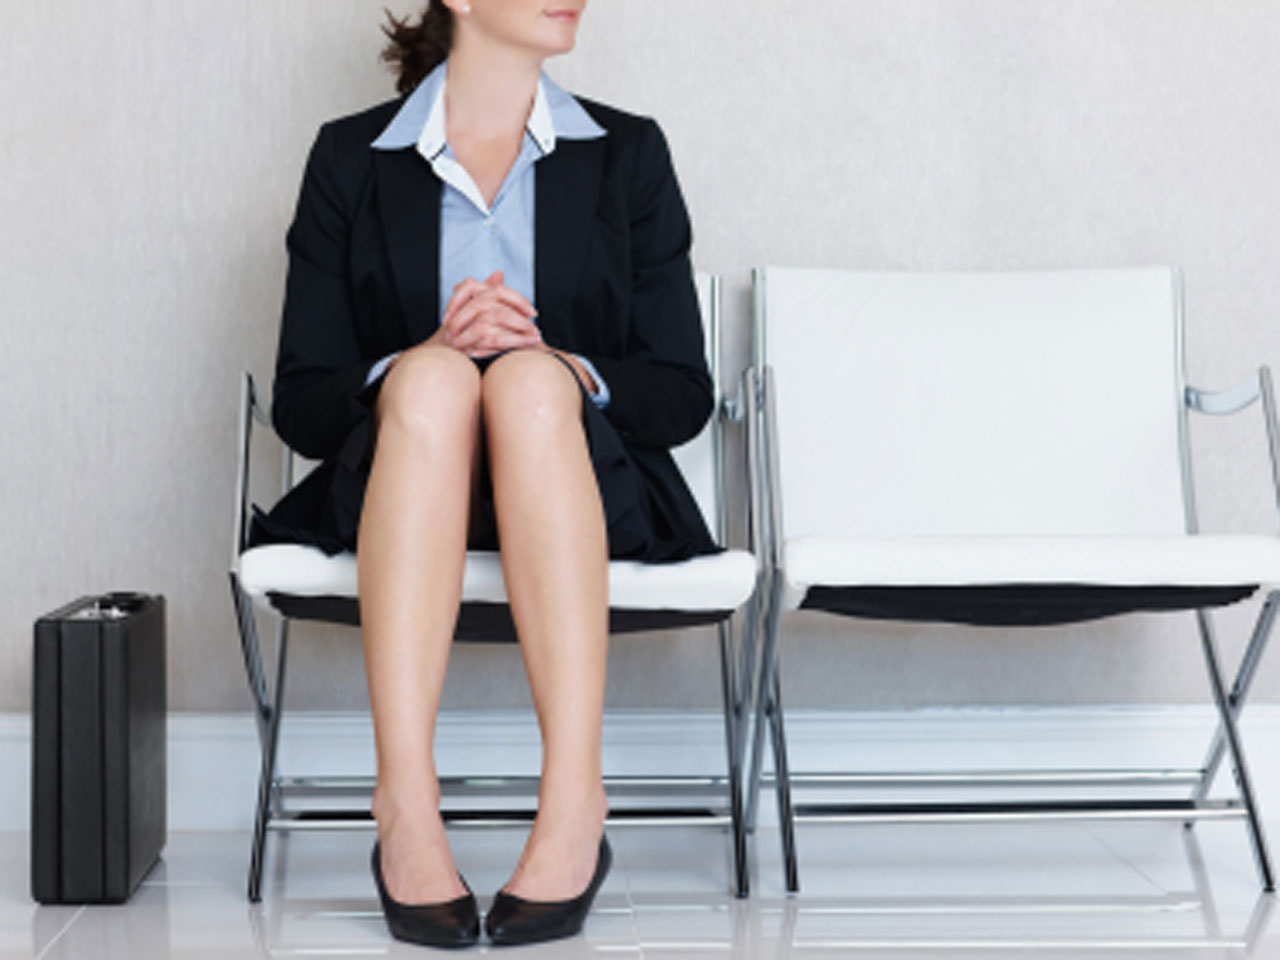 tips to prepare for a job interview cbs news